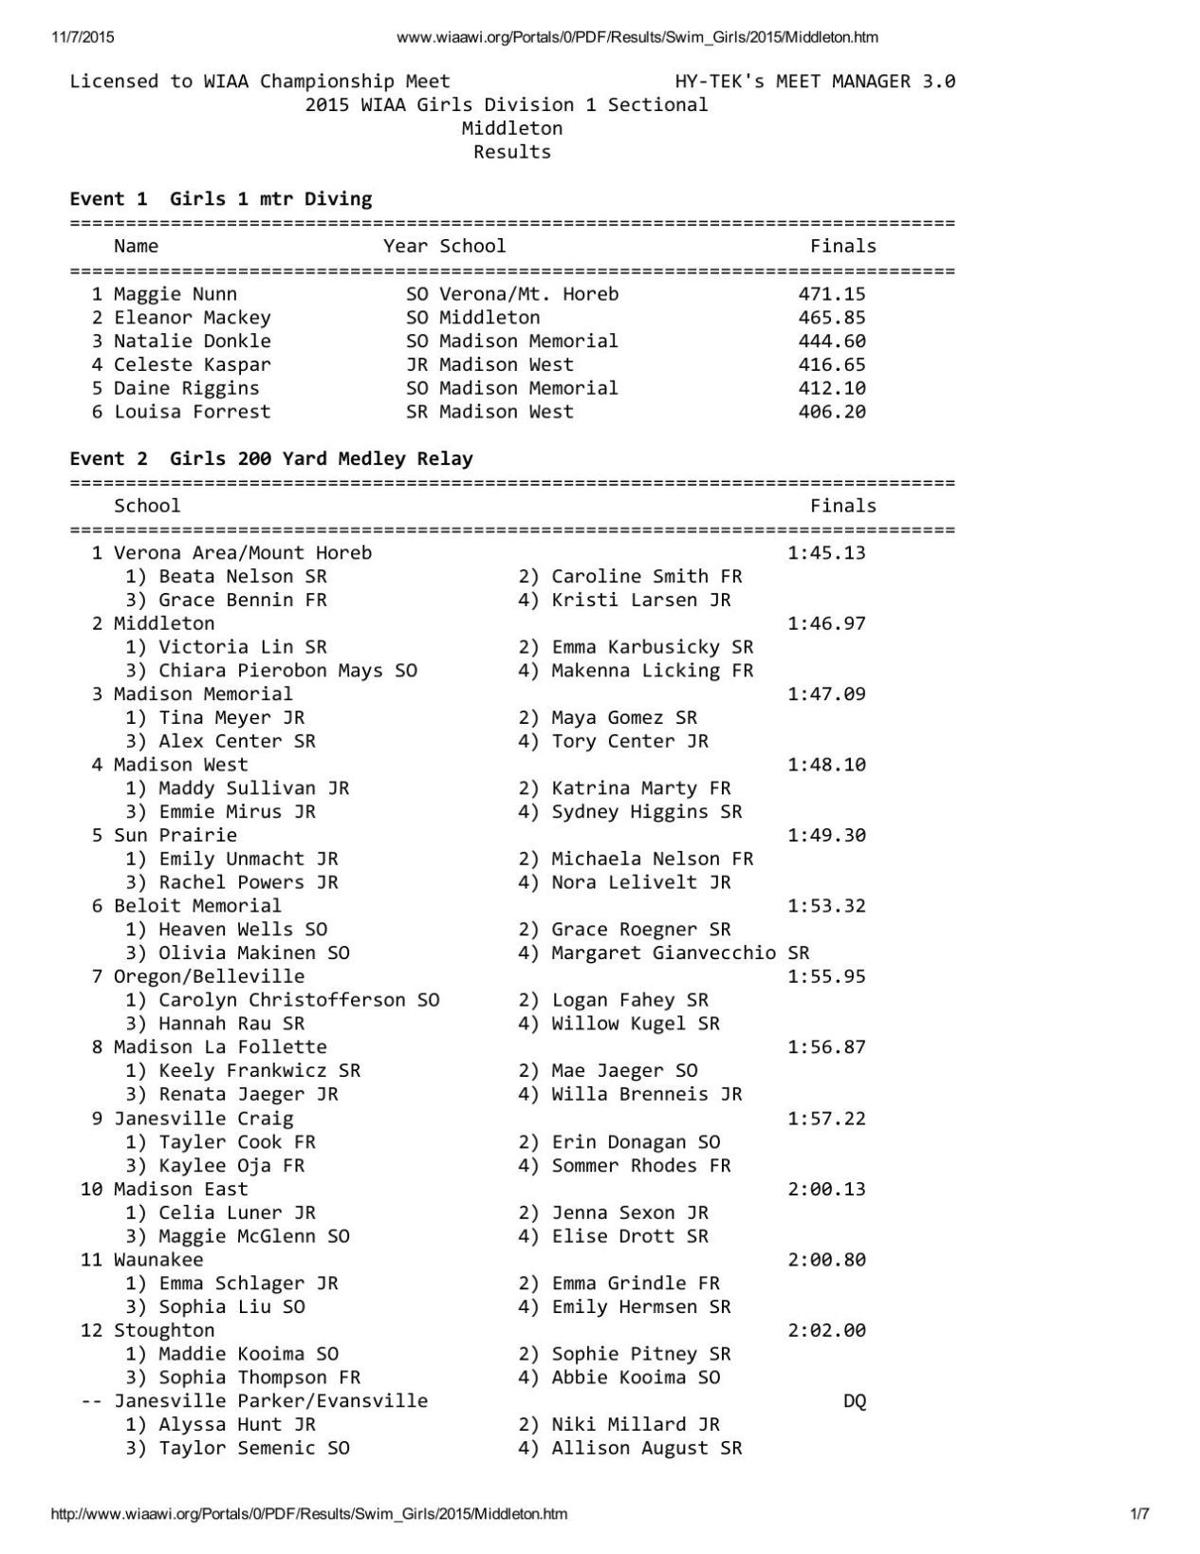 wiaa division 1 state swimming meet results